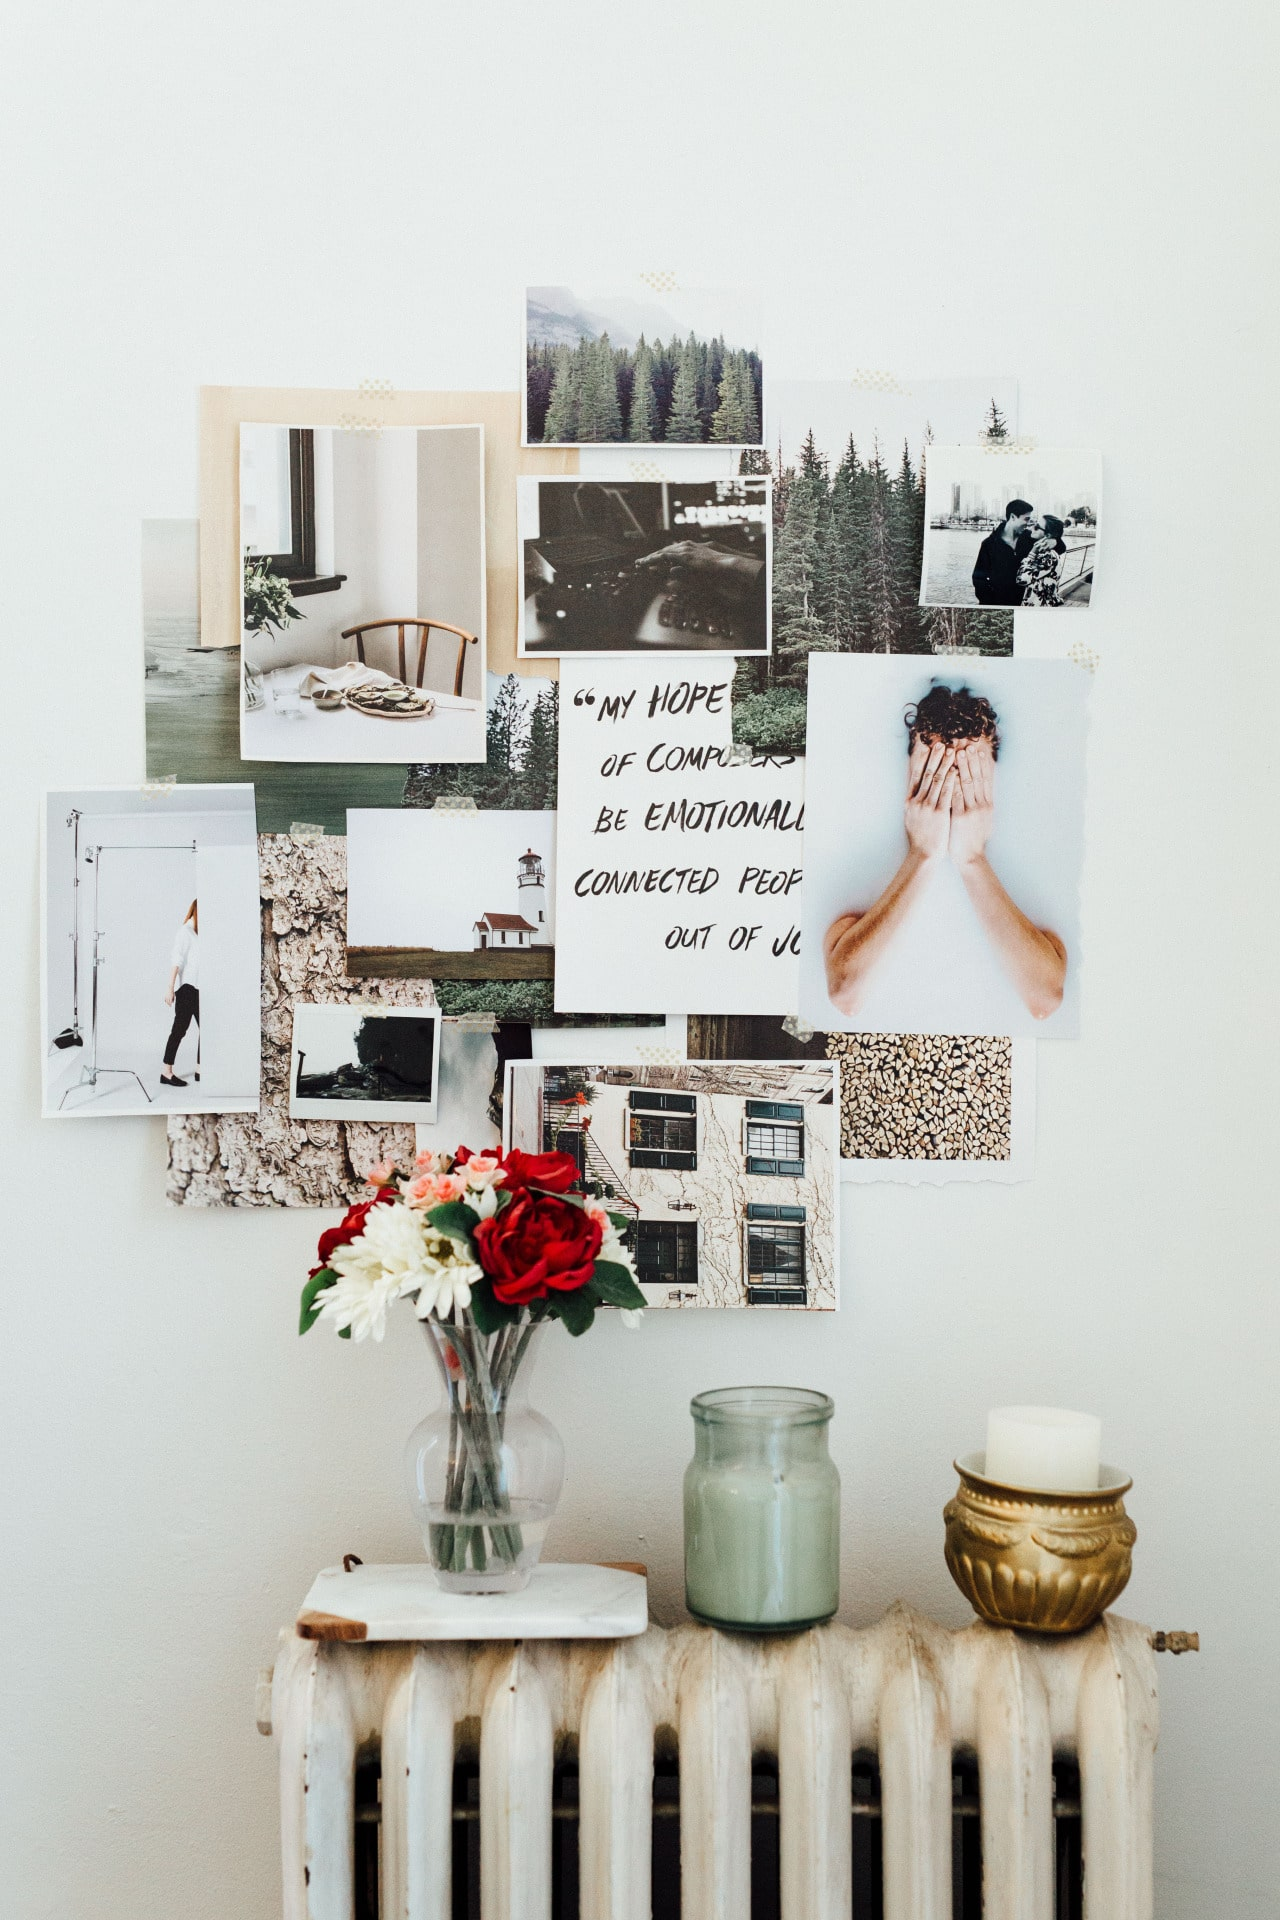 Tumblr Room Wall Decor Using Mood Boards To Develop Your Brand Notes On Design